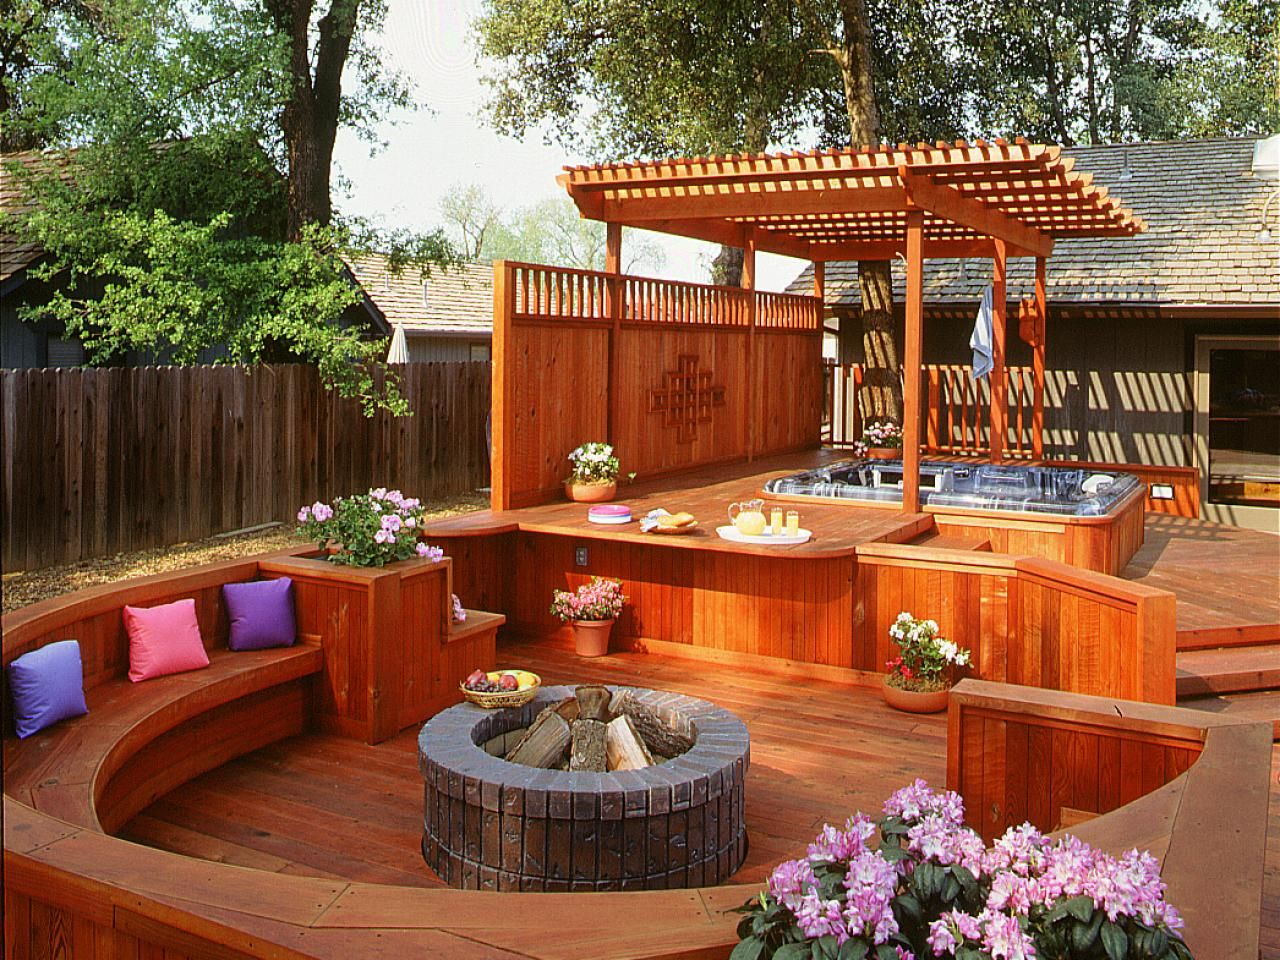 Deck Backyard Ideas 10 things to know before building your deck 7 Sizzling Hot Tub Designs